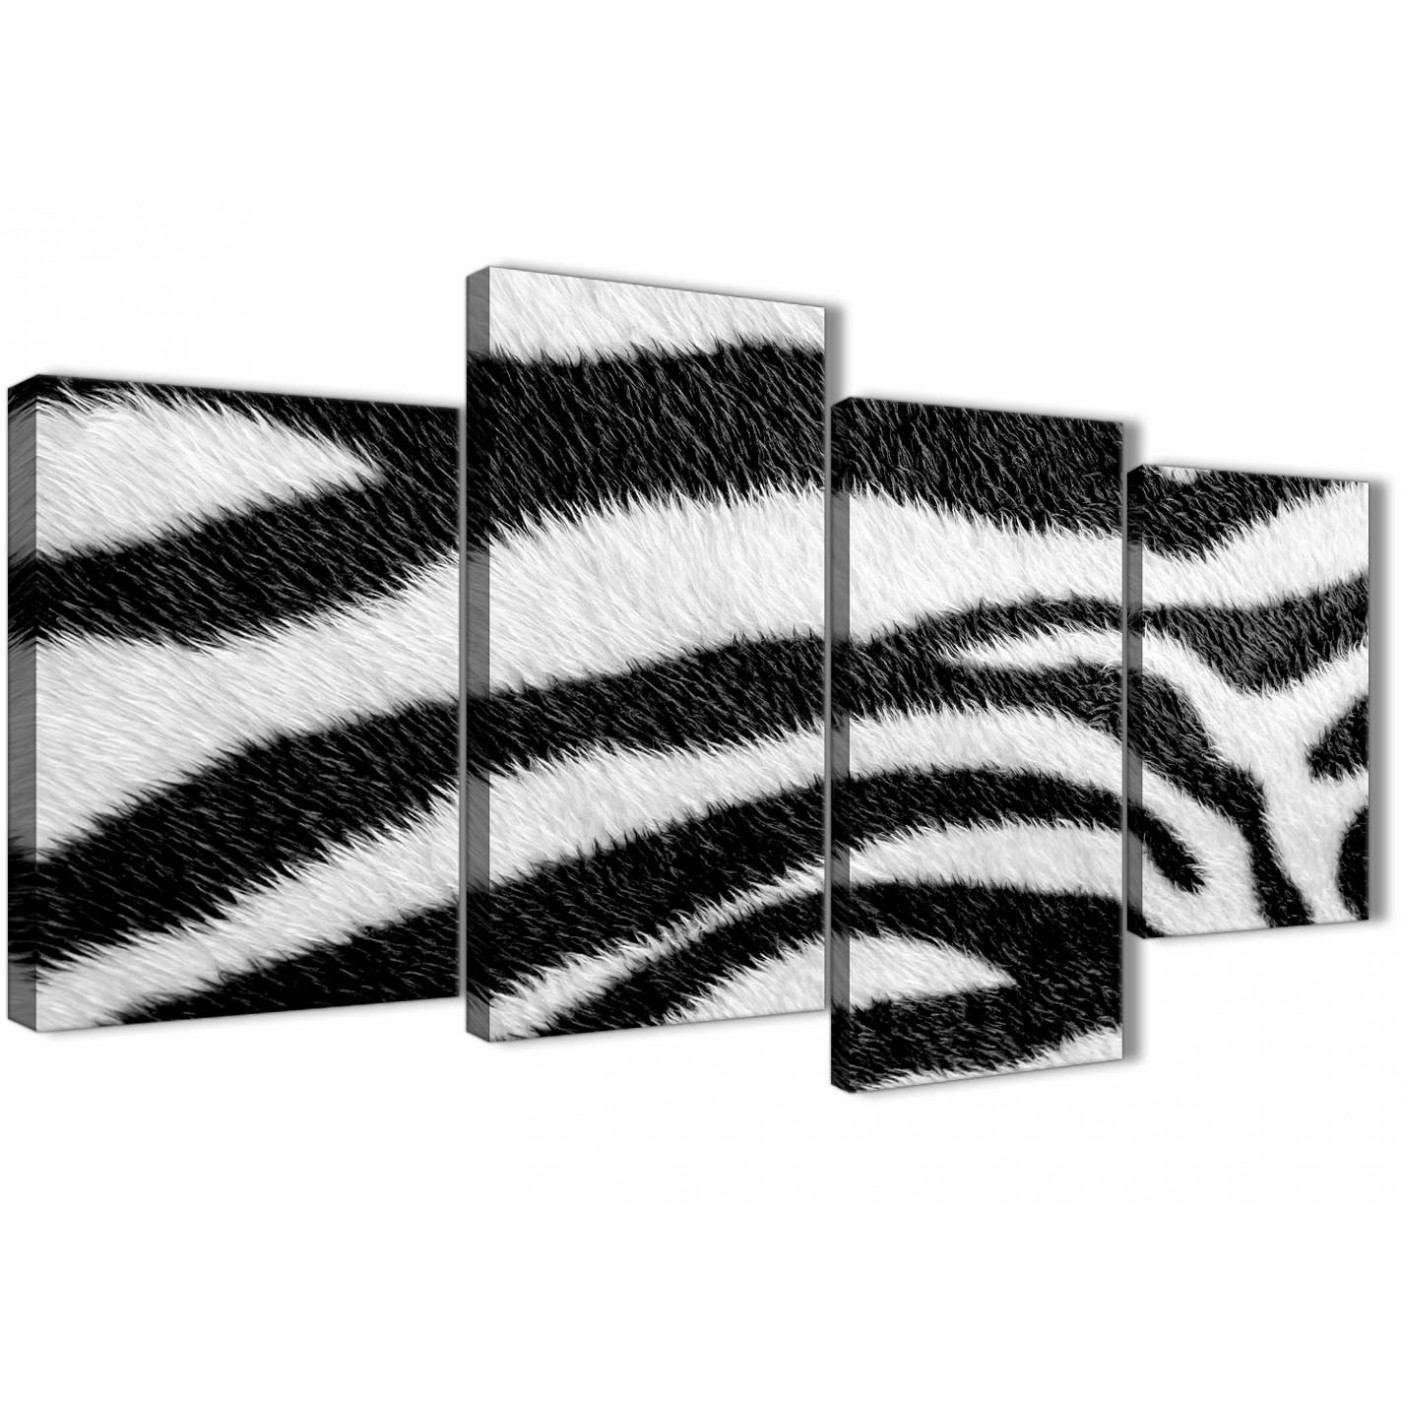 Display gallery item 1 · large black white zebra animal print abstract living